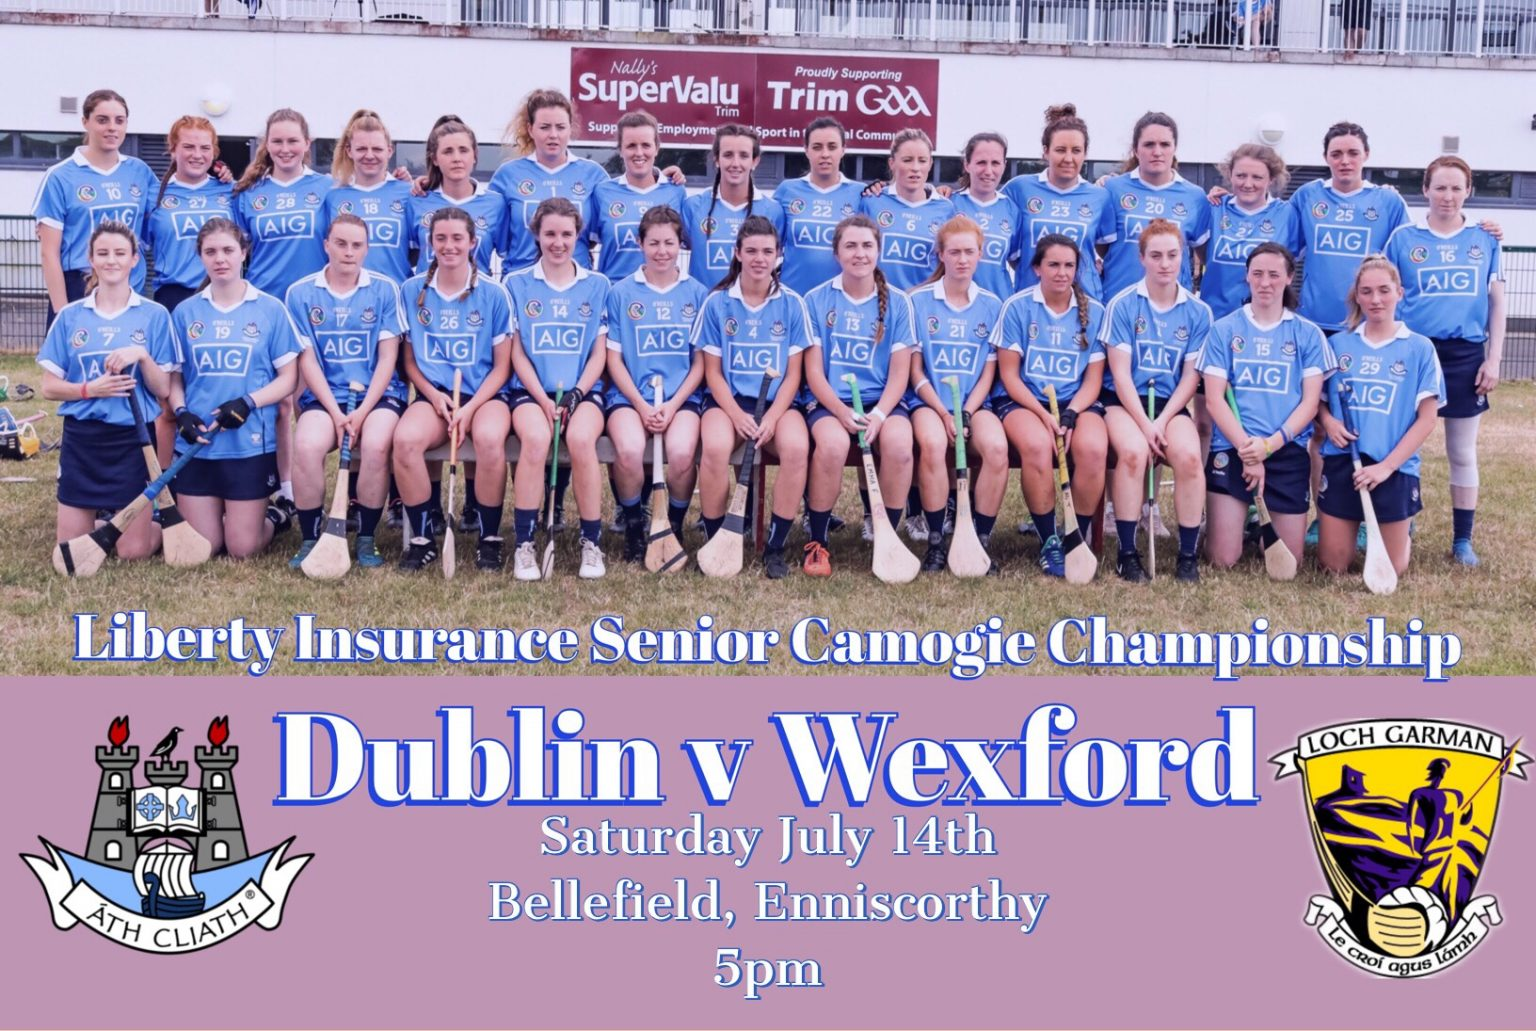 Promotional Poster For the Dublin senior camogie teams latest championship clash against Wexford which features a photo of the whole squad in sky blue jerseys and navy skorts